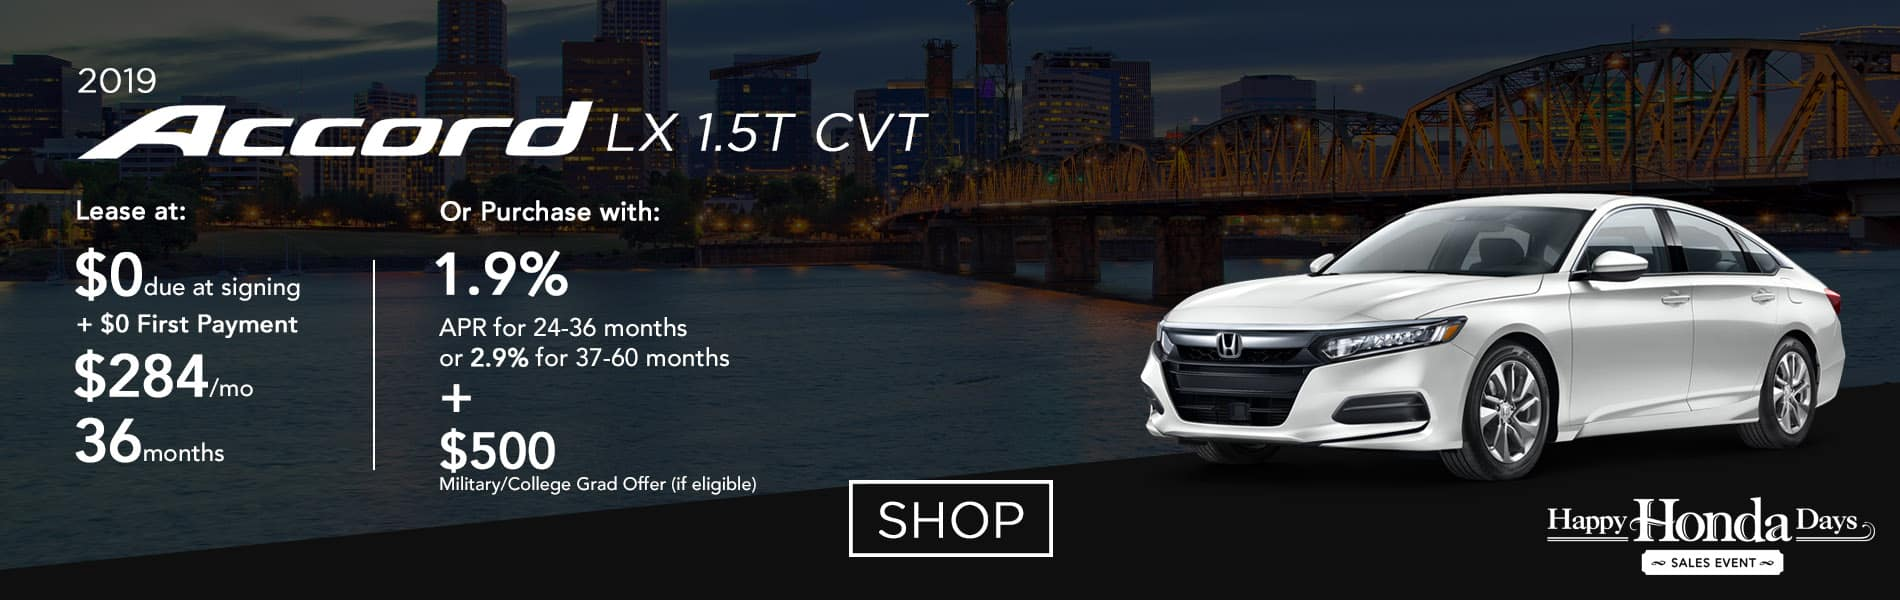 Lease a 2019 Accord LX 1.5T CVT for $284 per month or purchase with 1.9% APR up to 36 months